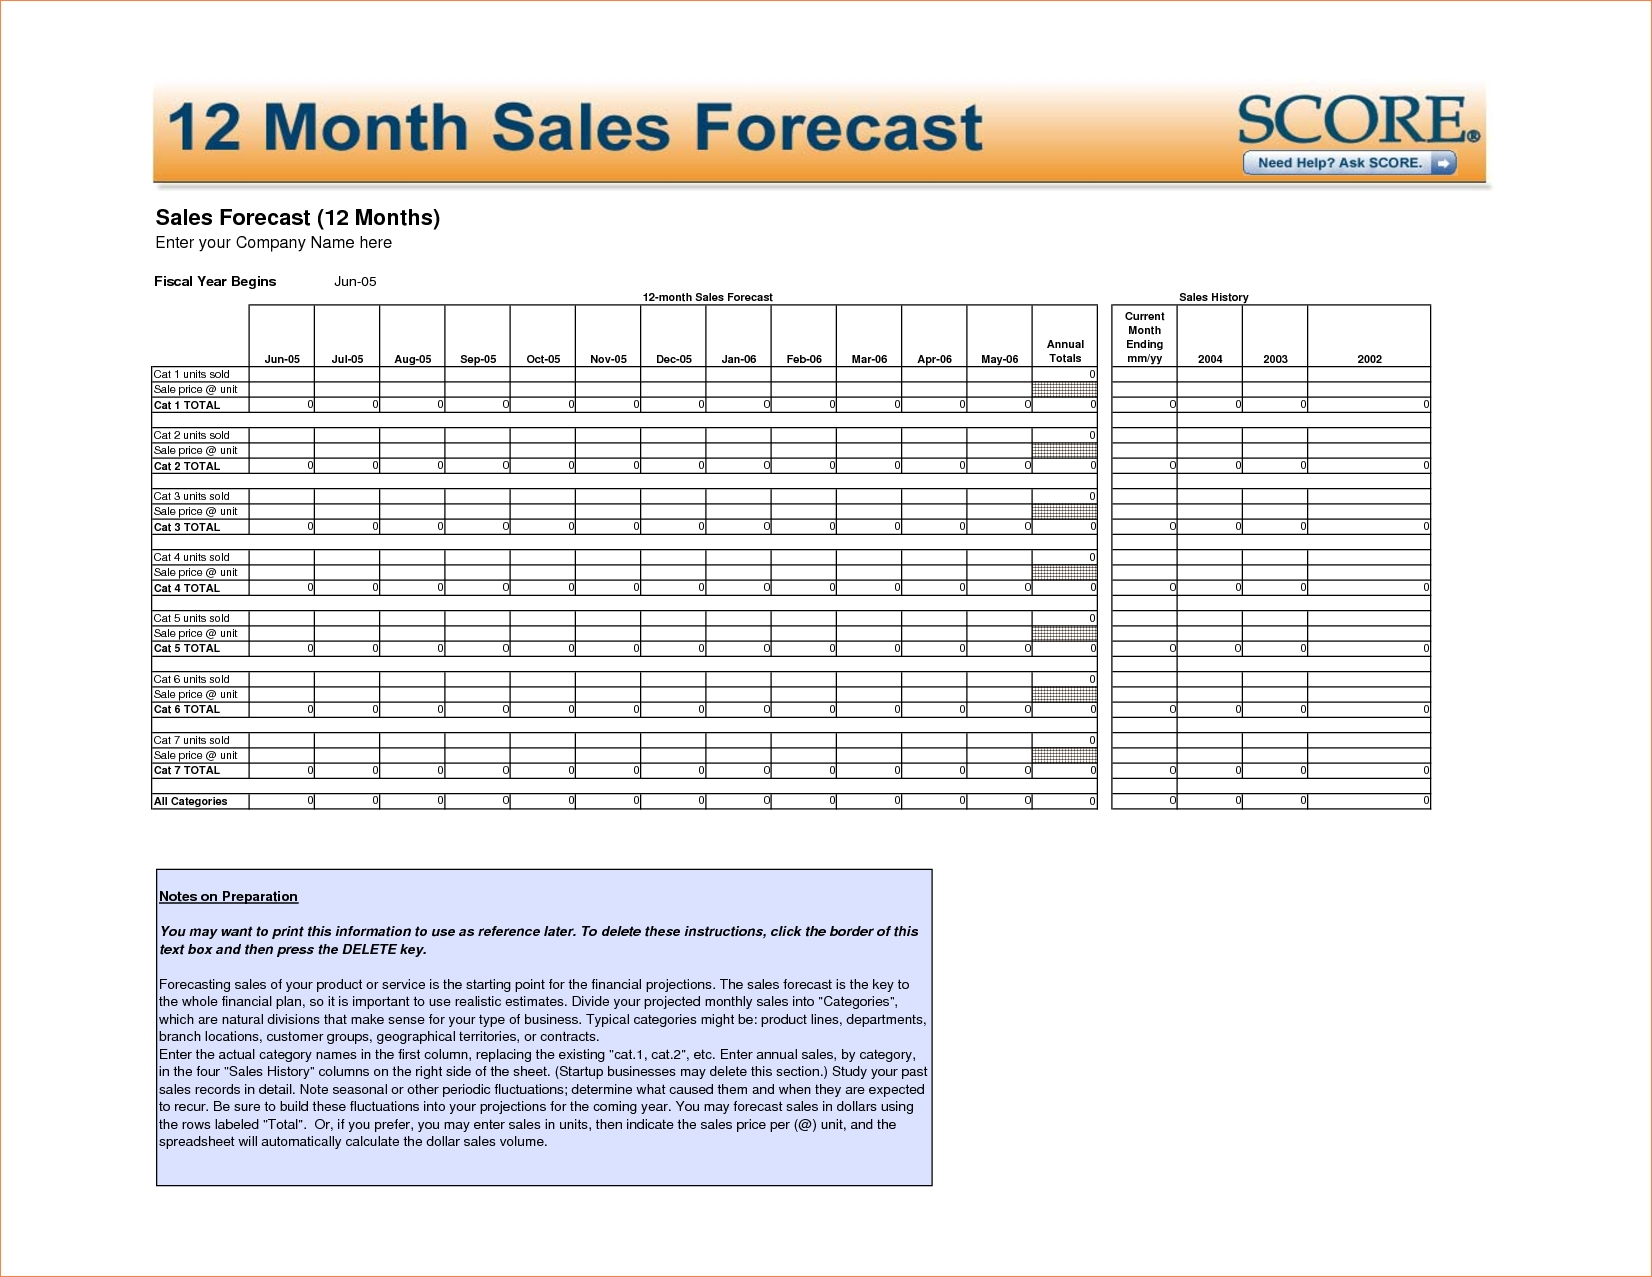 Sales Forecast Spreadsheet Template Sales Forecast Spreadsheet With Sales Forecast Spreadsheet